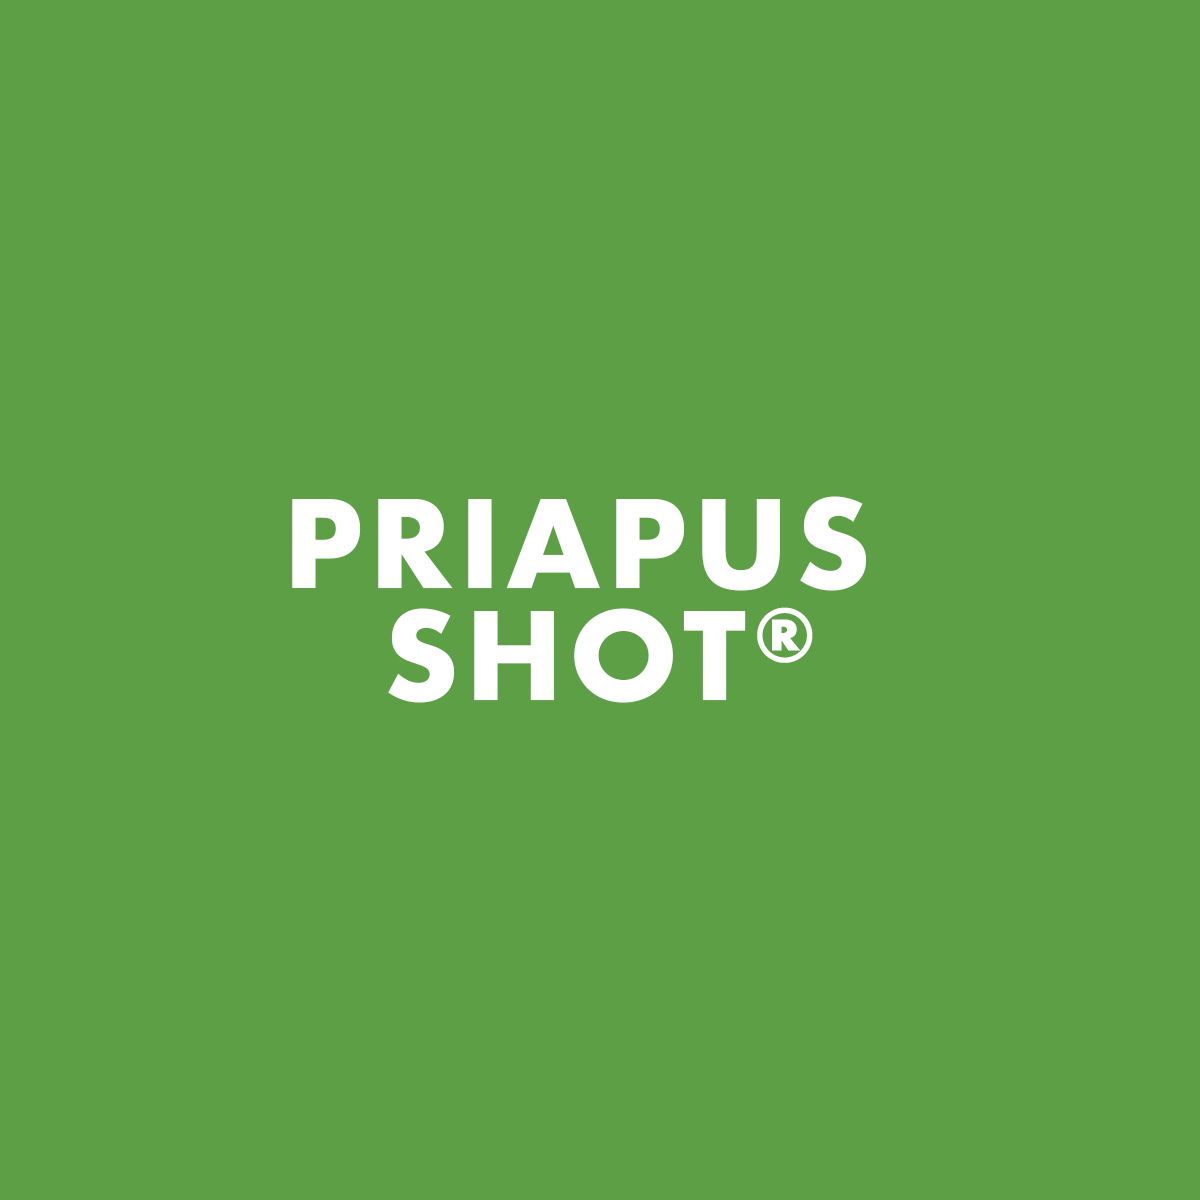 priapusshot2.png